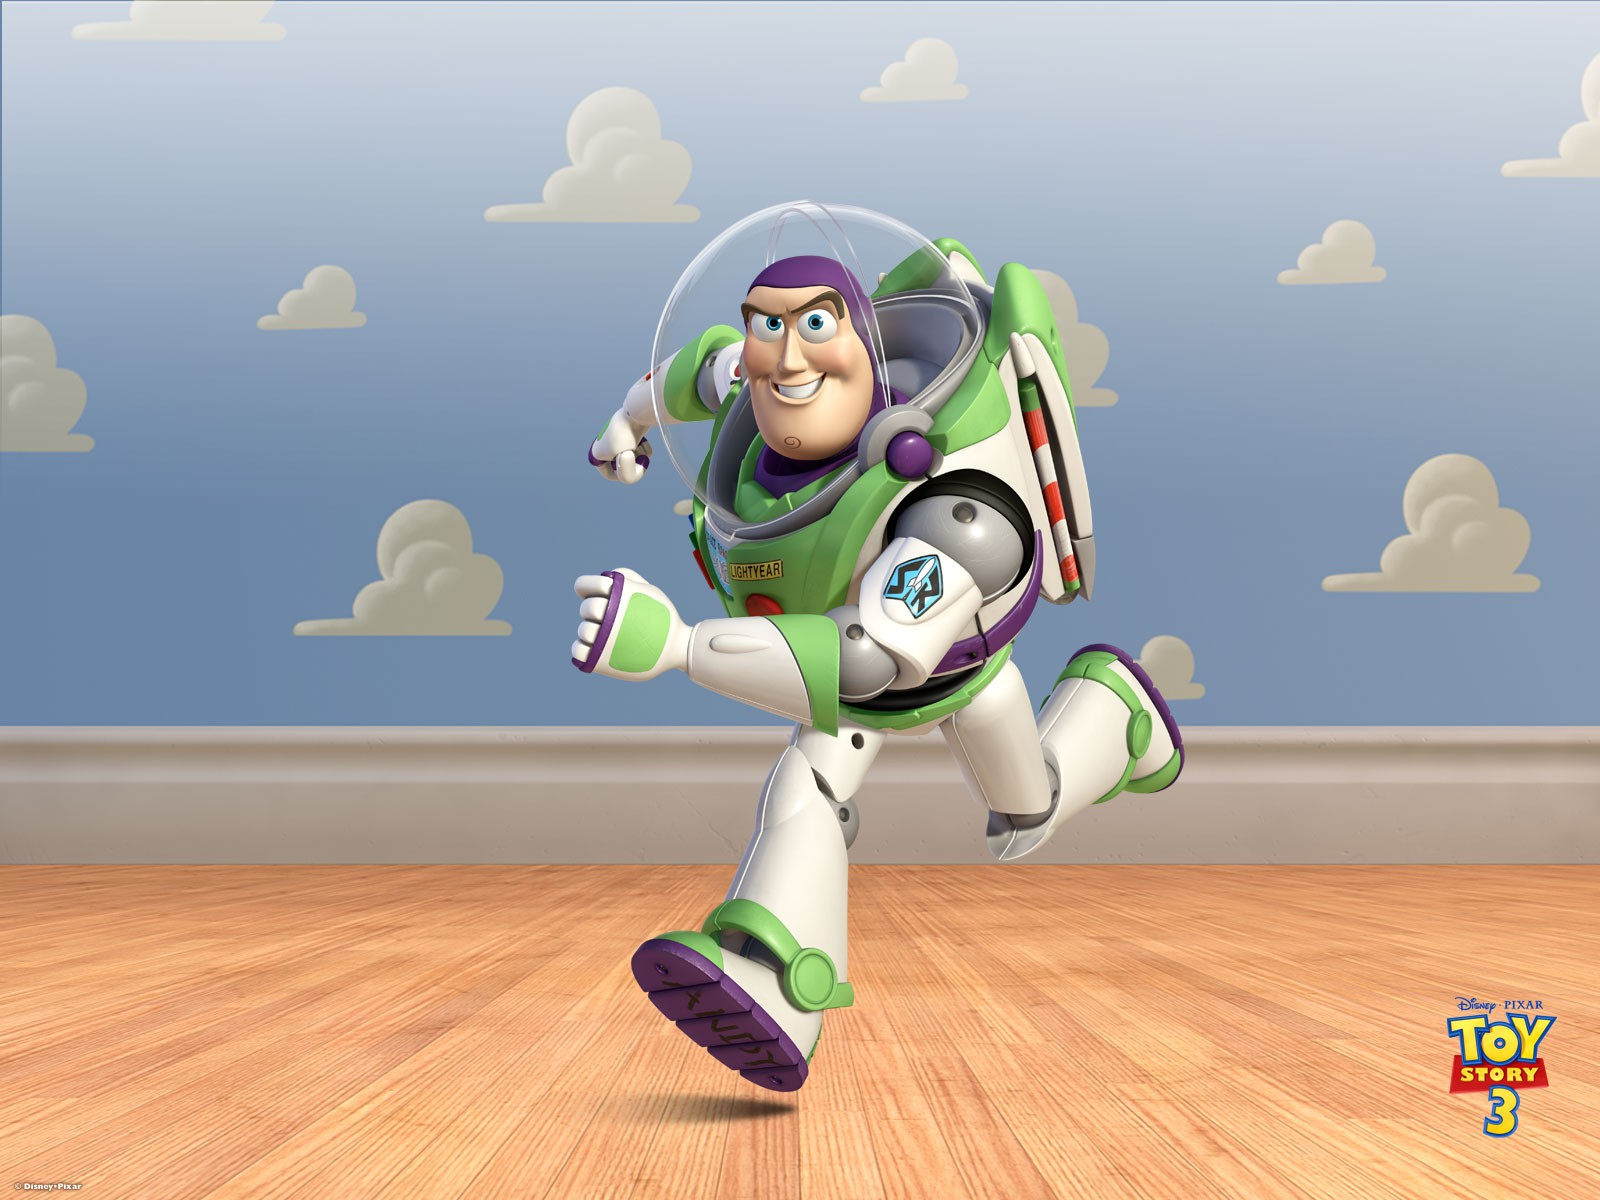 Nuovo poster di Buzz per Toy Story 3